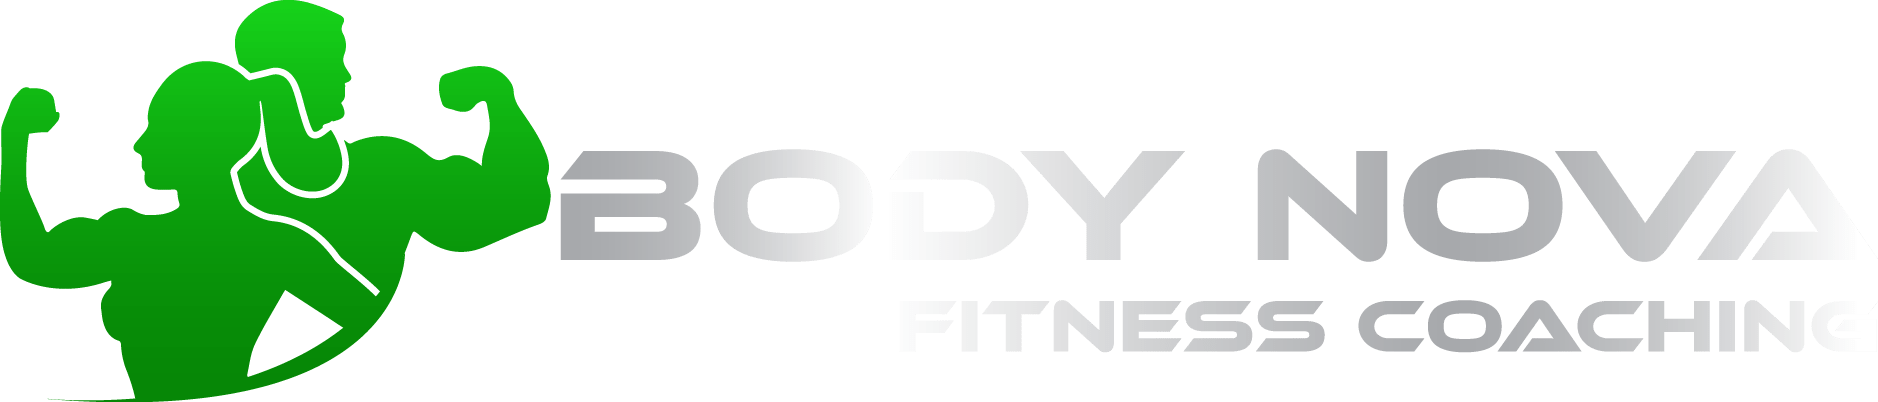 Body Nova Fitness Coaching